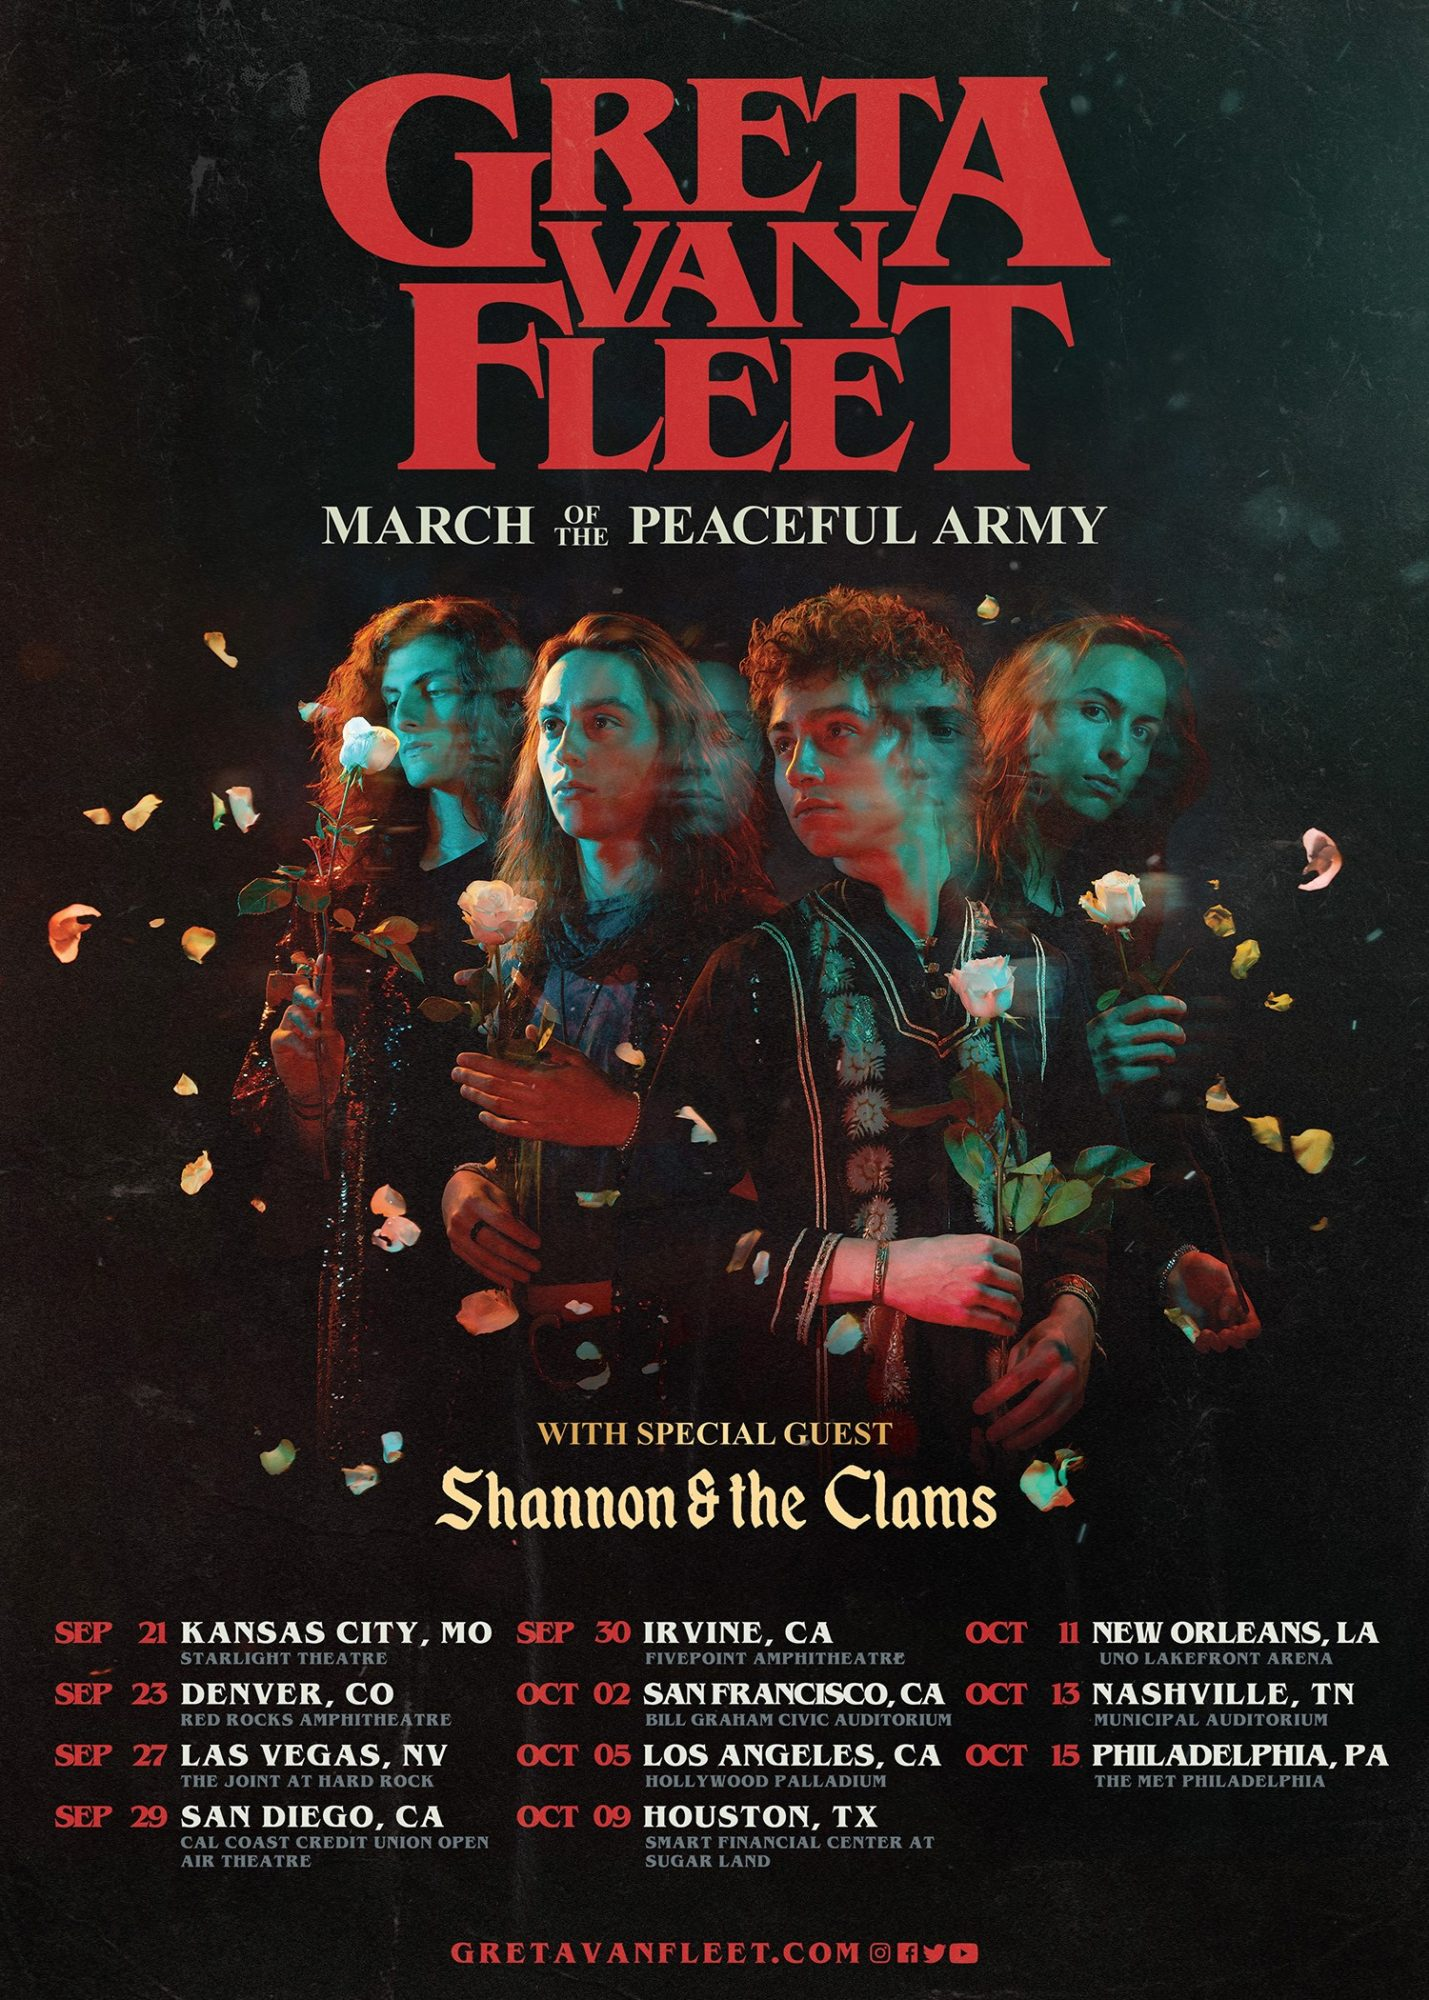 GRETA VAN FLEET ANNOUNCES FALL LEG OF ITS 2019 MARCH OF THE PEACEFUL ARMY TOUR